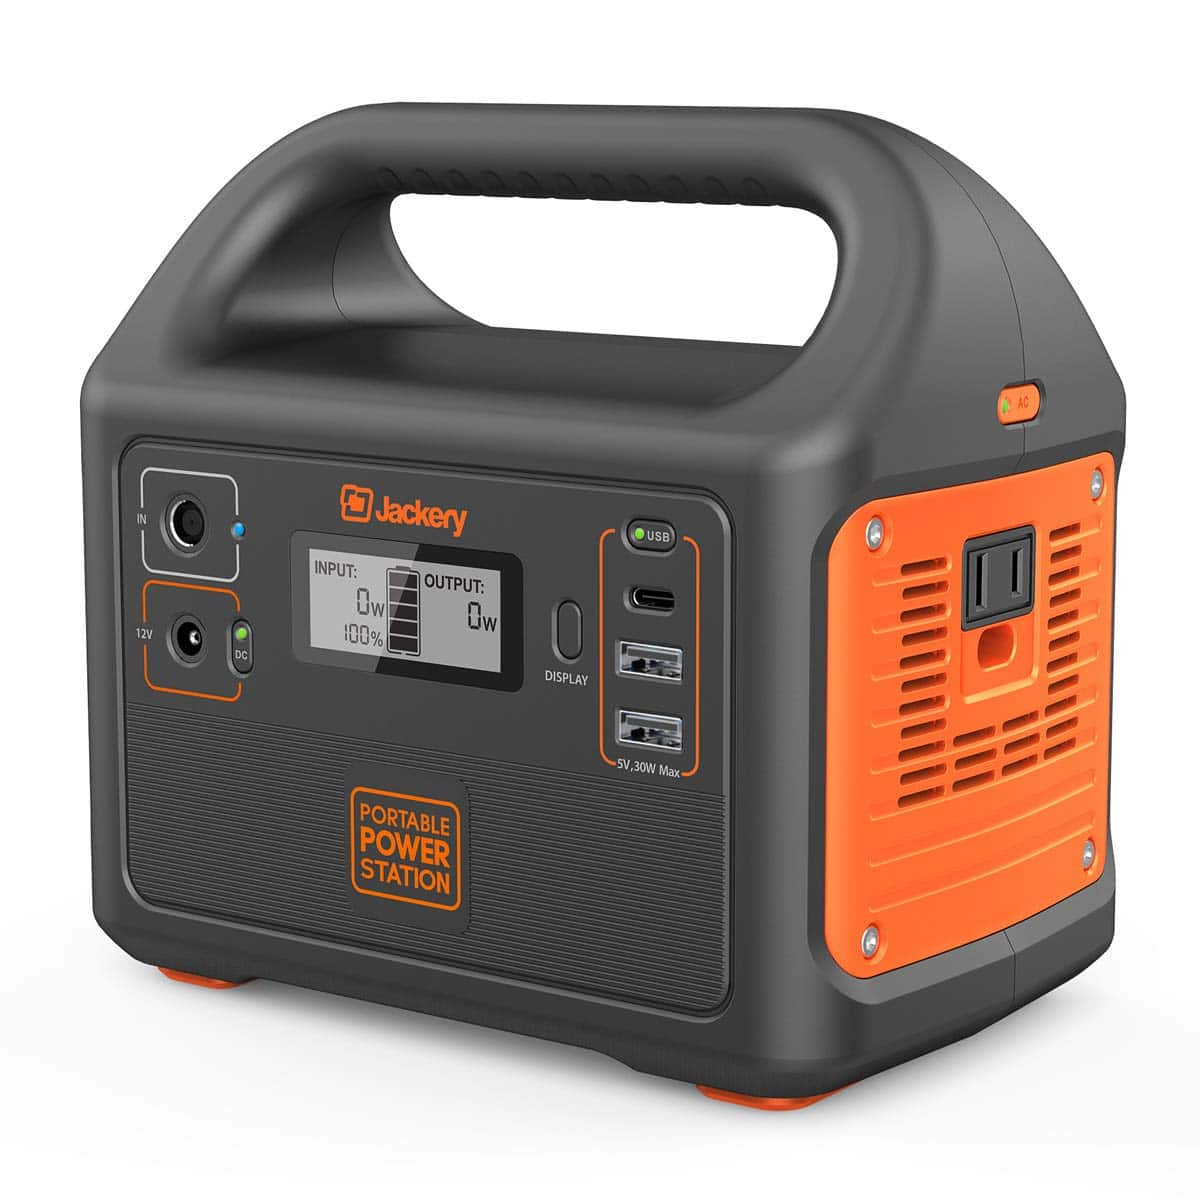 Jackery Portable Power Station Explorer 160 - Back Up Power Supply, A/C Outlet, USB C and USB and D/C for $109.99